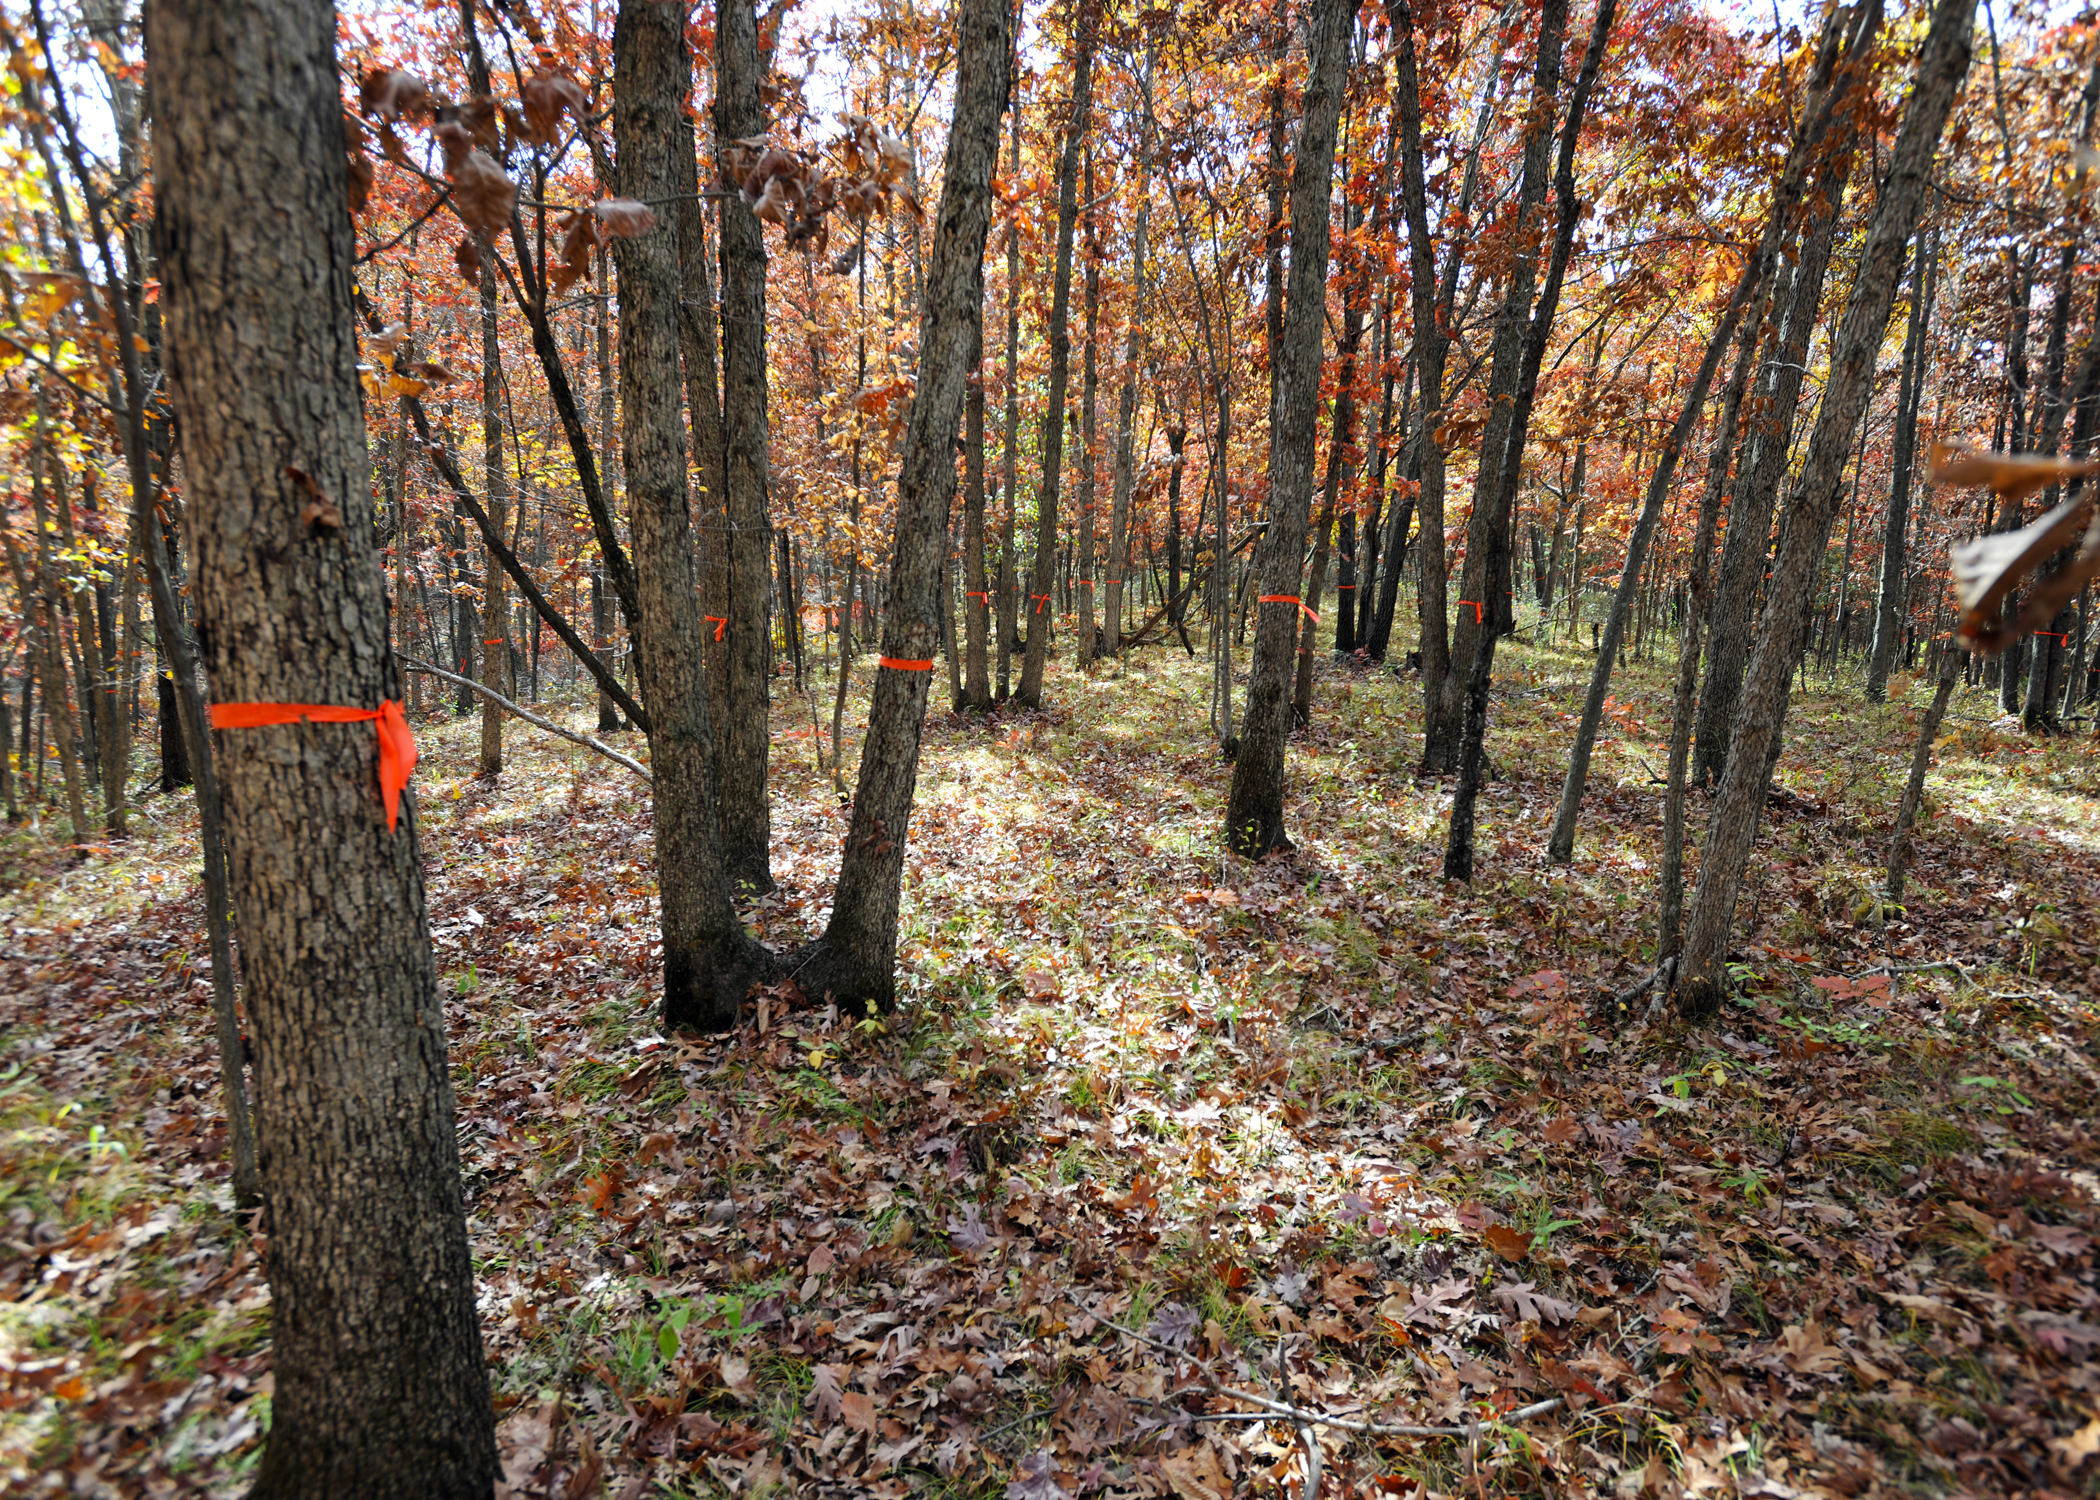 Good trees are marked on Clarke County woodlands. Brush/trees around marked trees will be cut down.